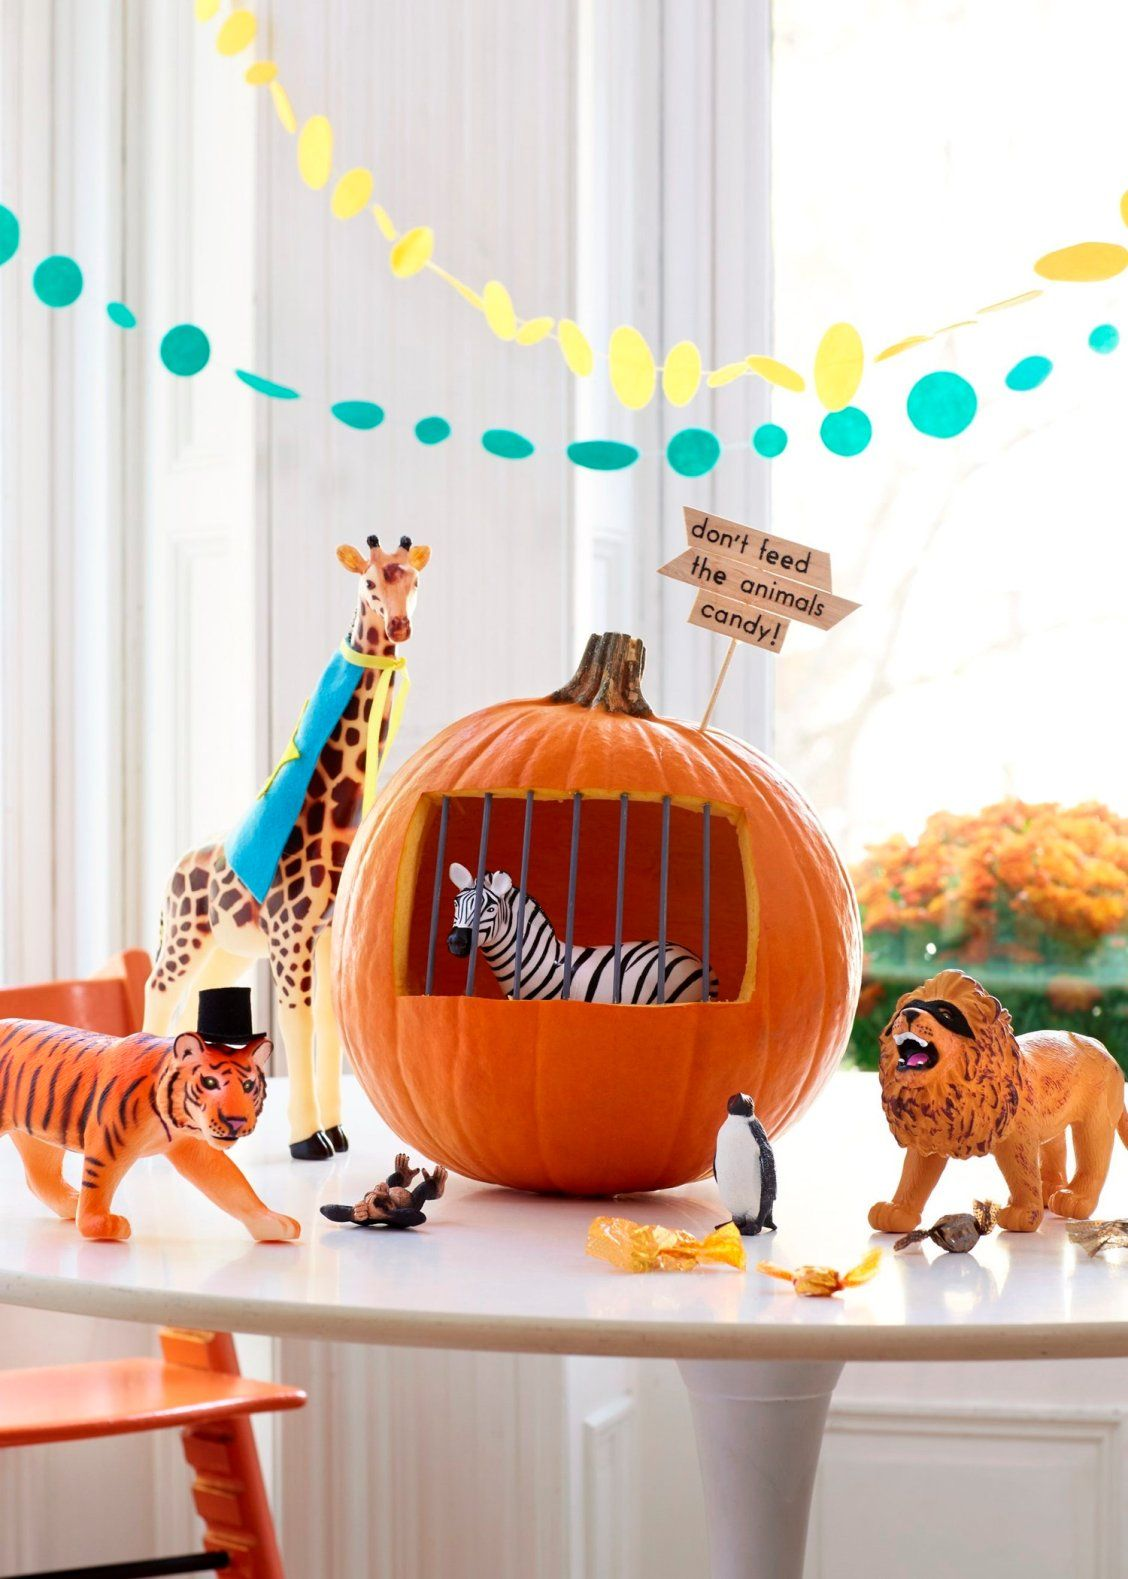 6 Adorable Ways to Decorate Halloween Pumpkins with Kids Pumpkin